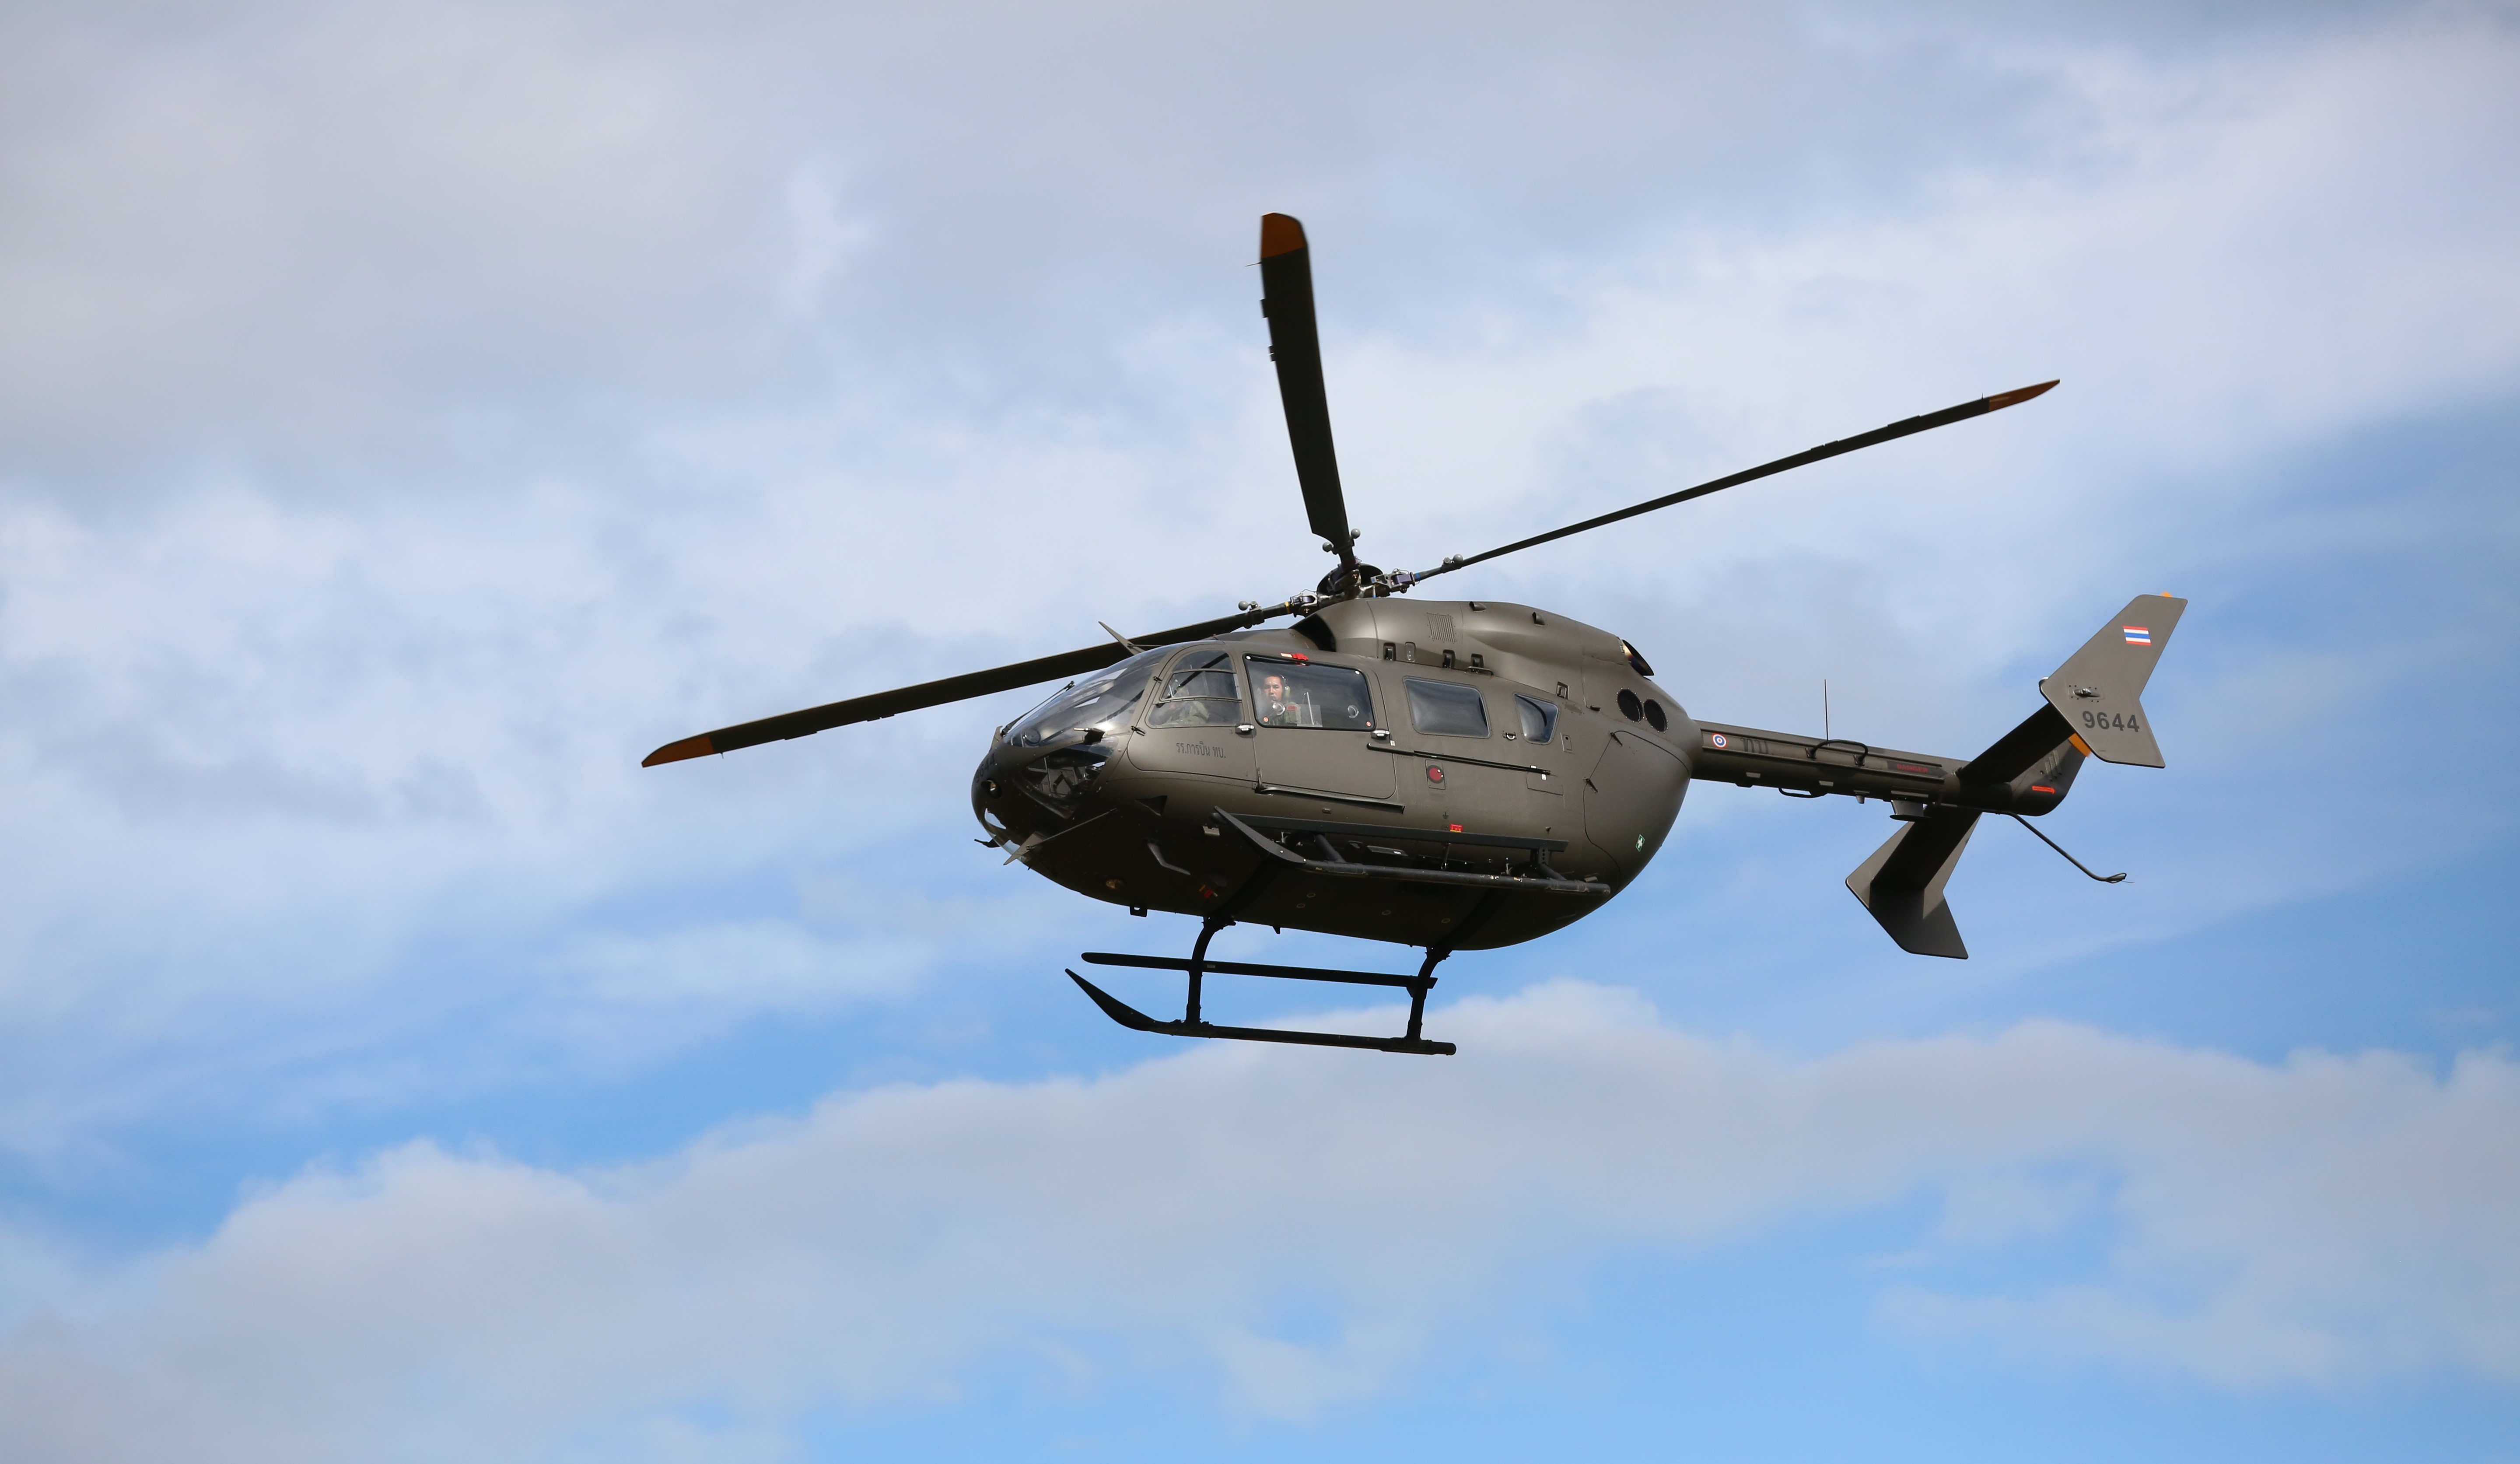 Canva - Gray Helicopter on Air